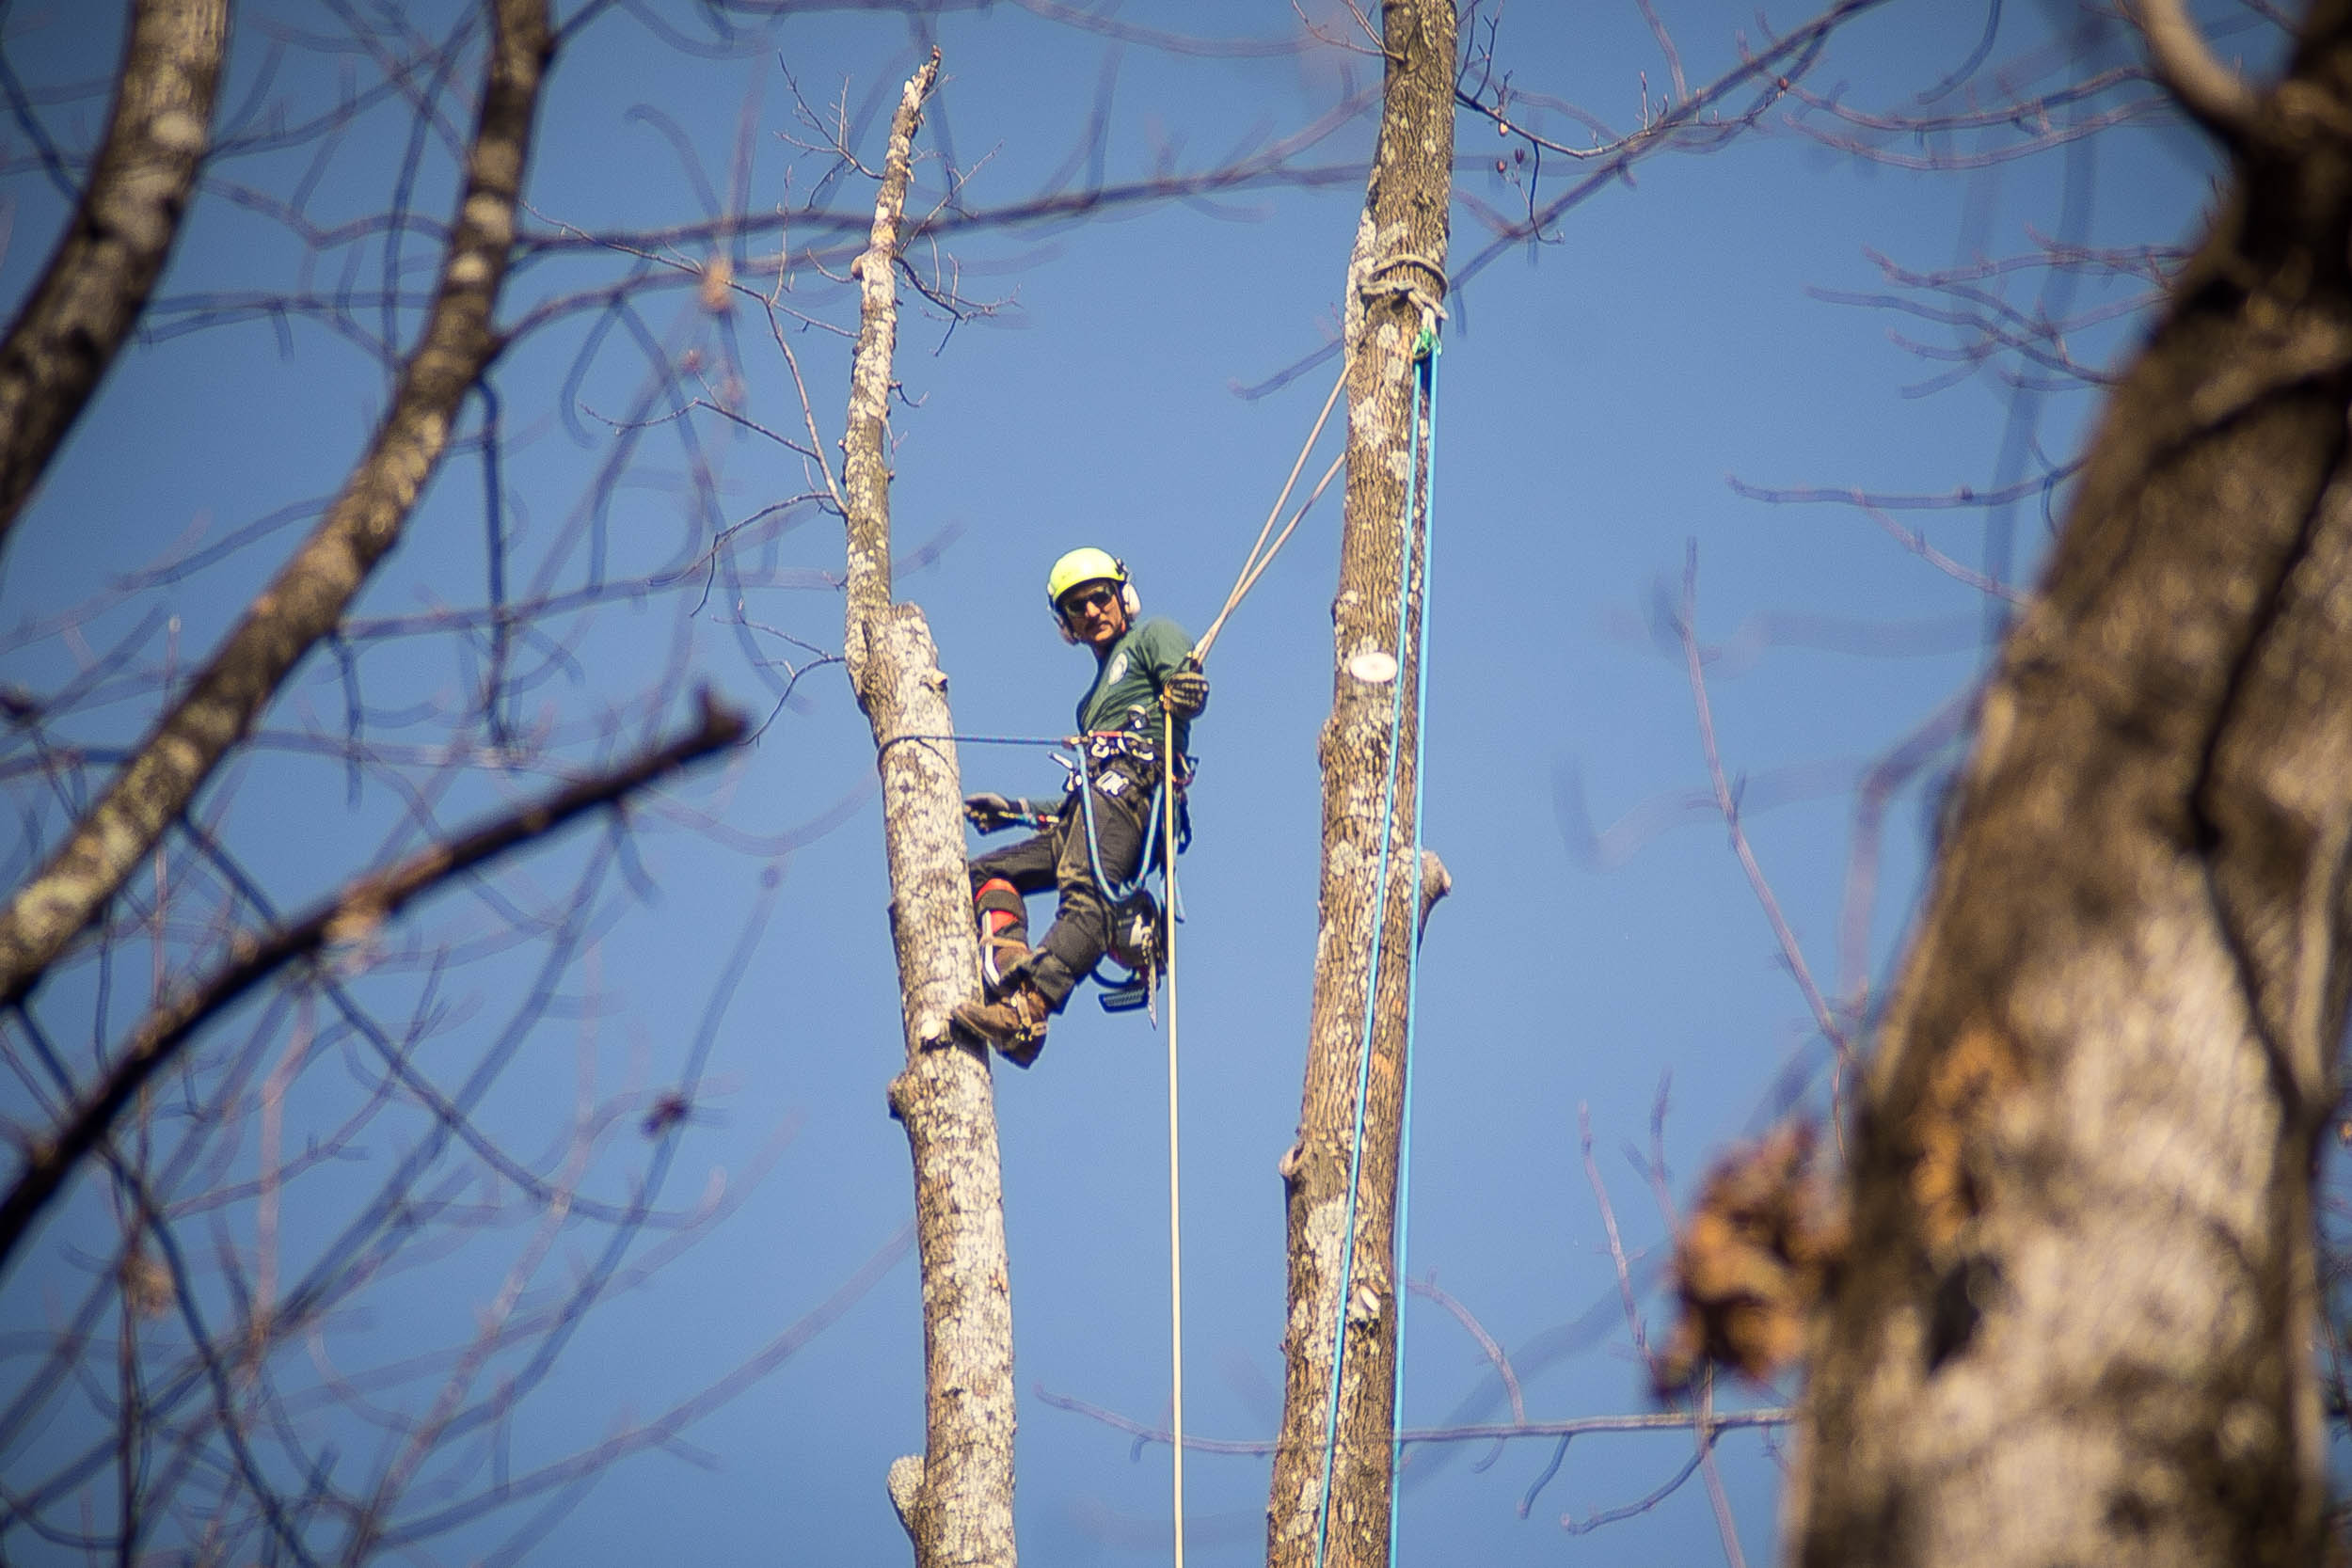 A Gunnison Tree professional high up in a tree